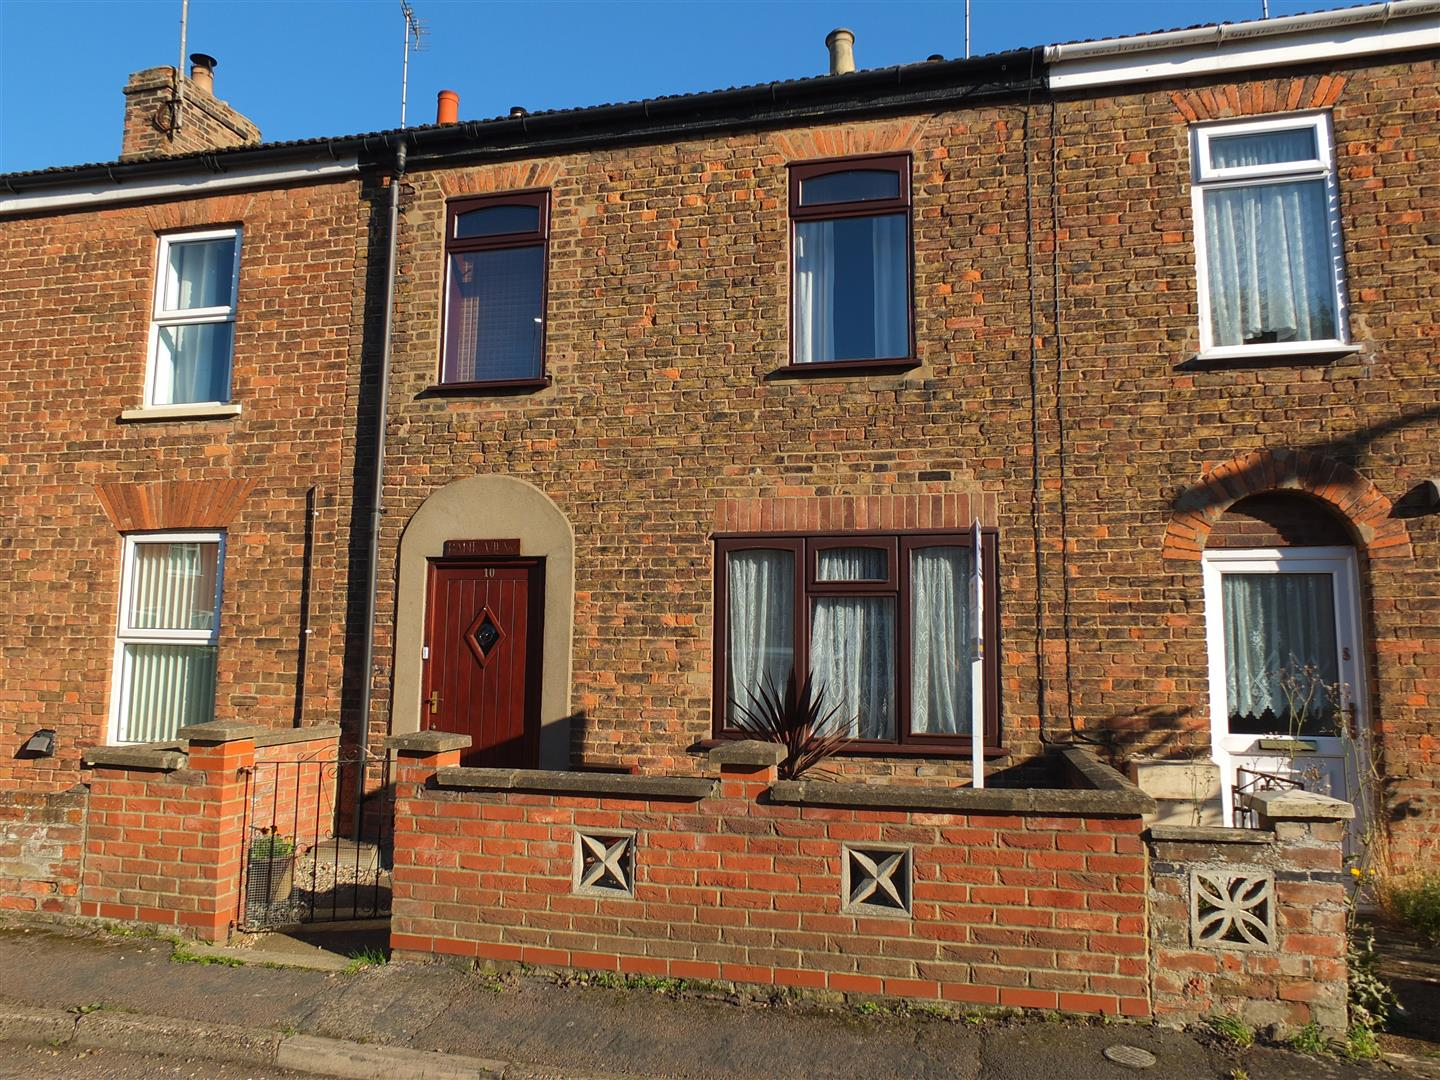 3 bed house to rent in Sutton Bridge Spalding, PE12 9UJ - Property Image 1